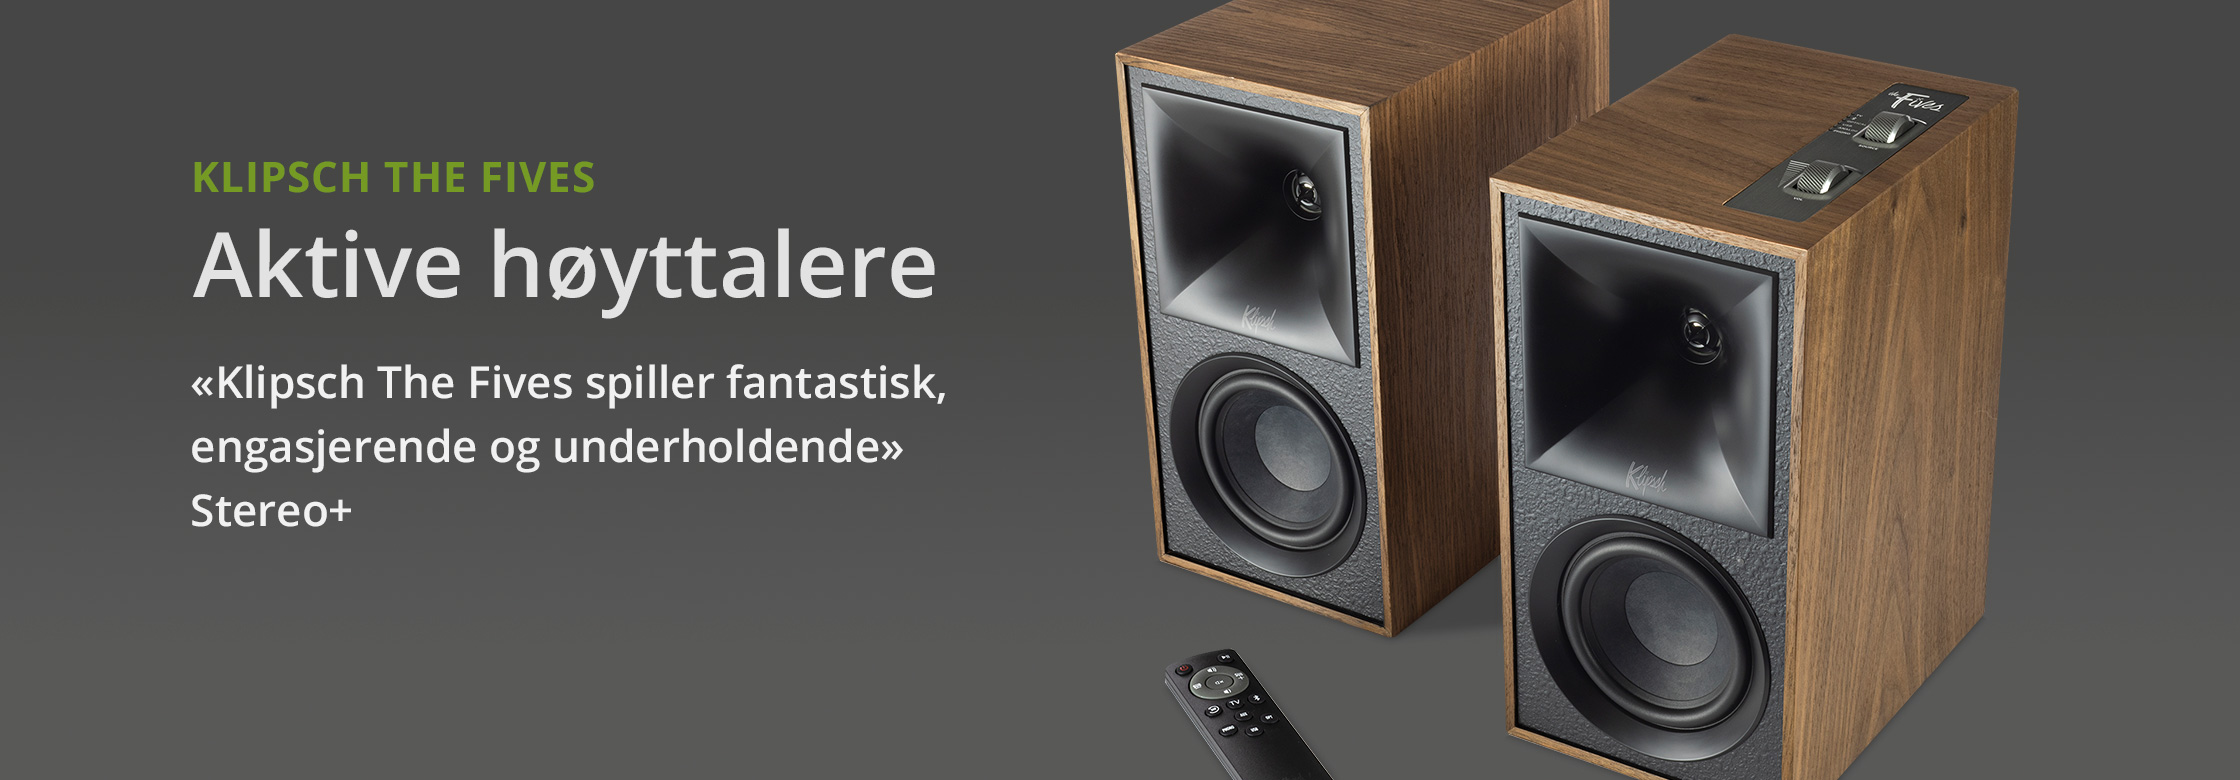 Klipsch_Fives